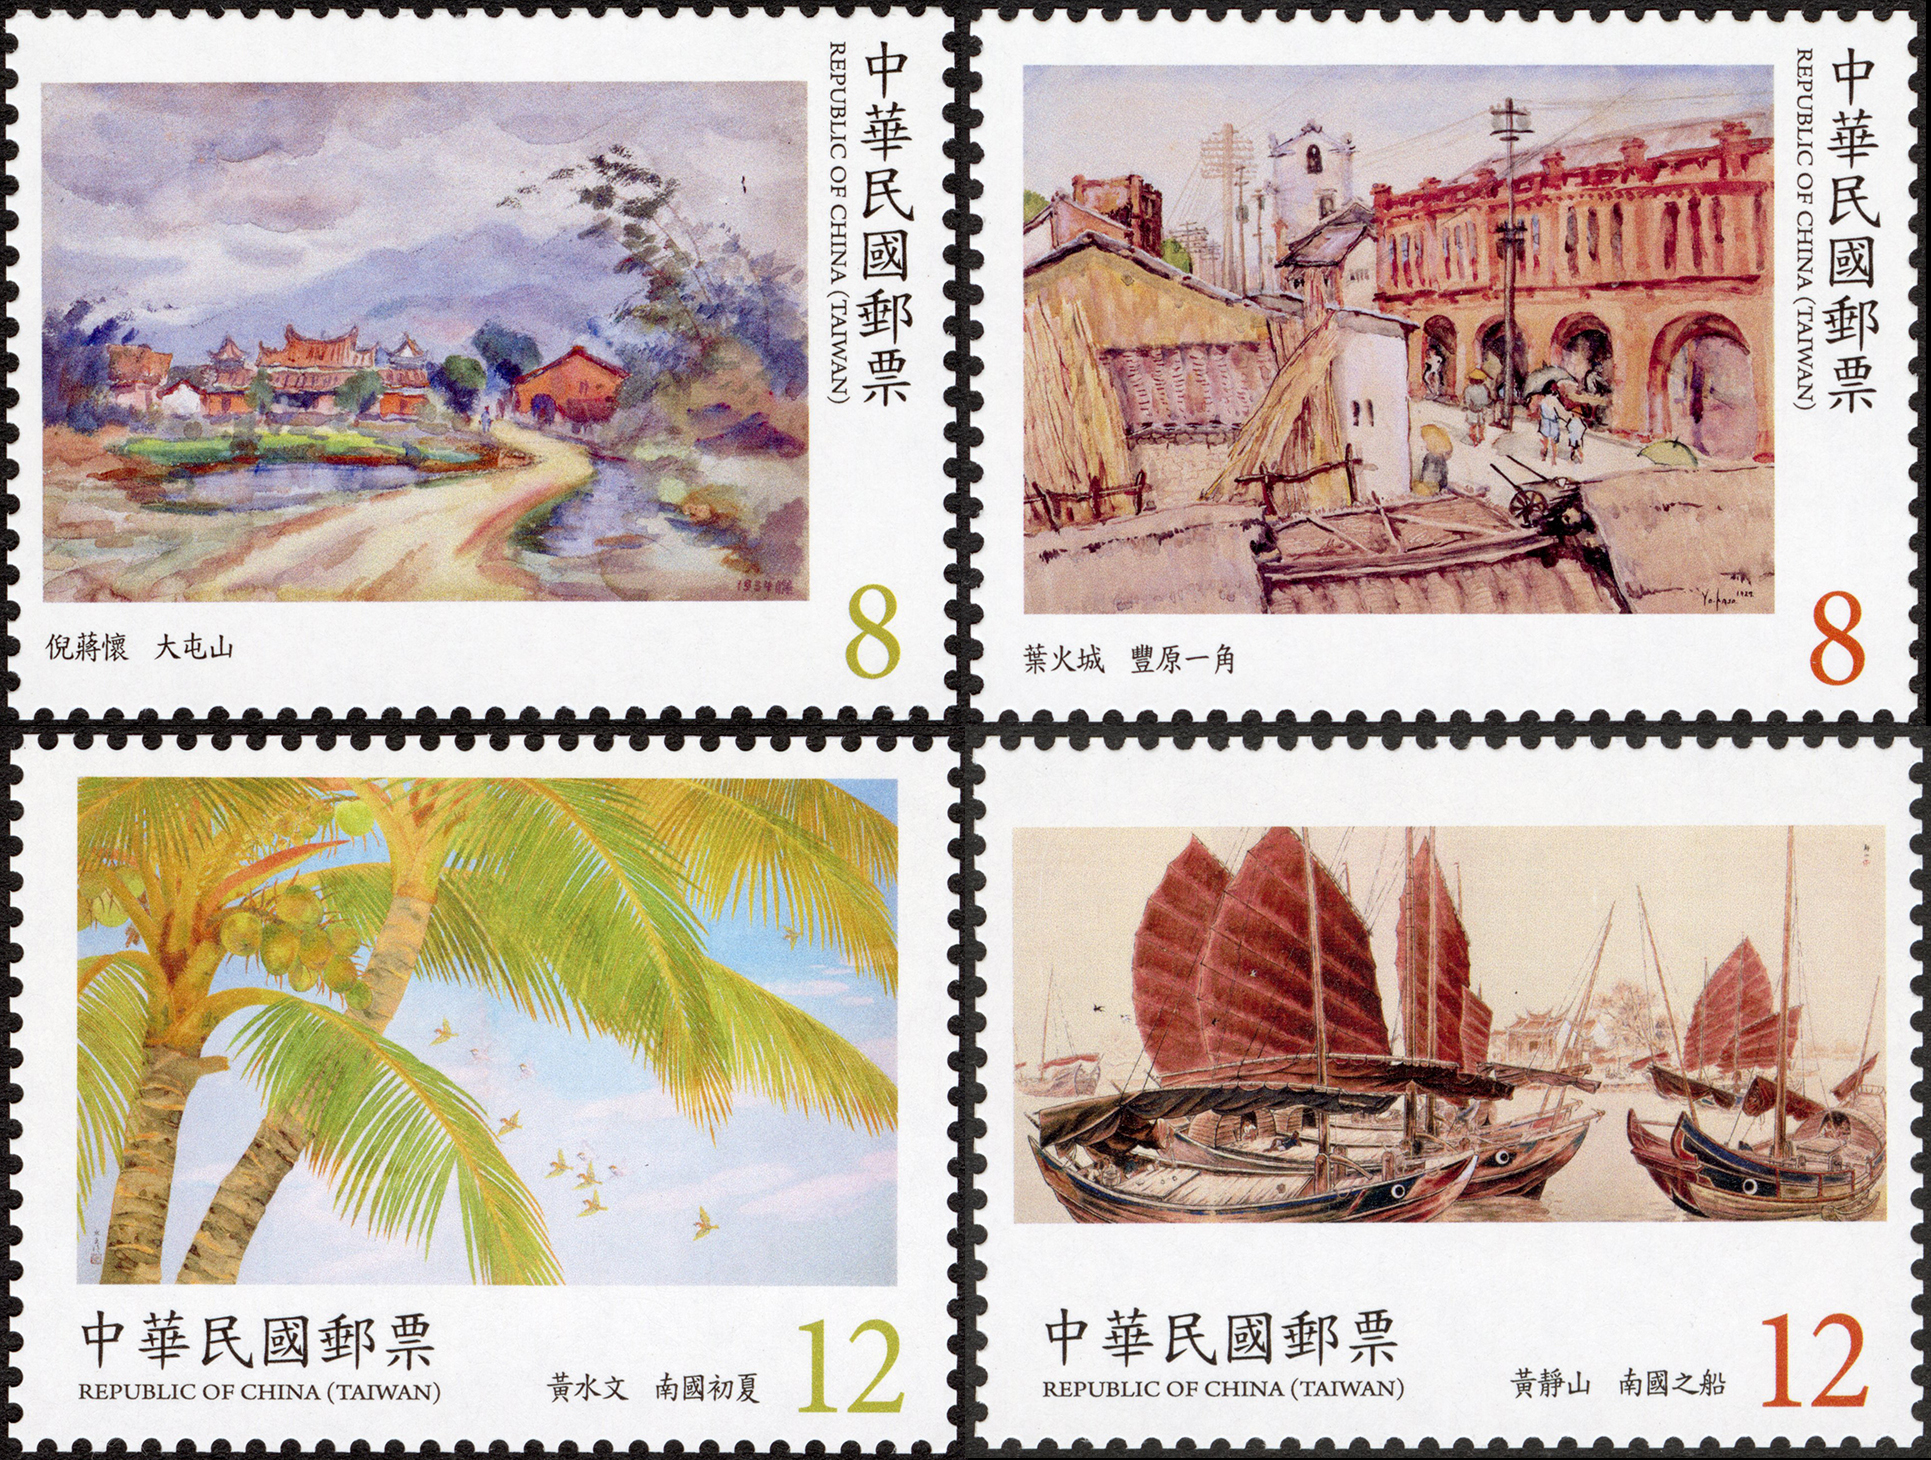 Modern Taiwanese Paintings Postage Stamps (Issue of 2021)